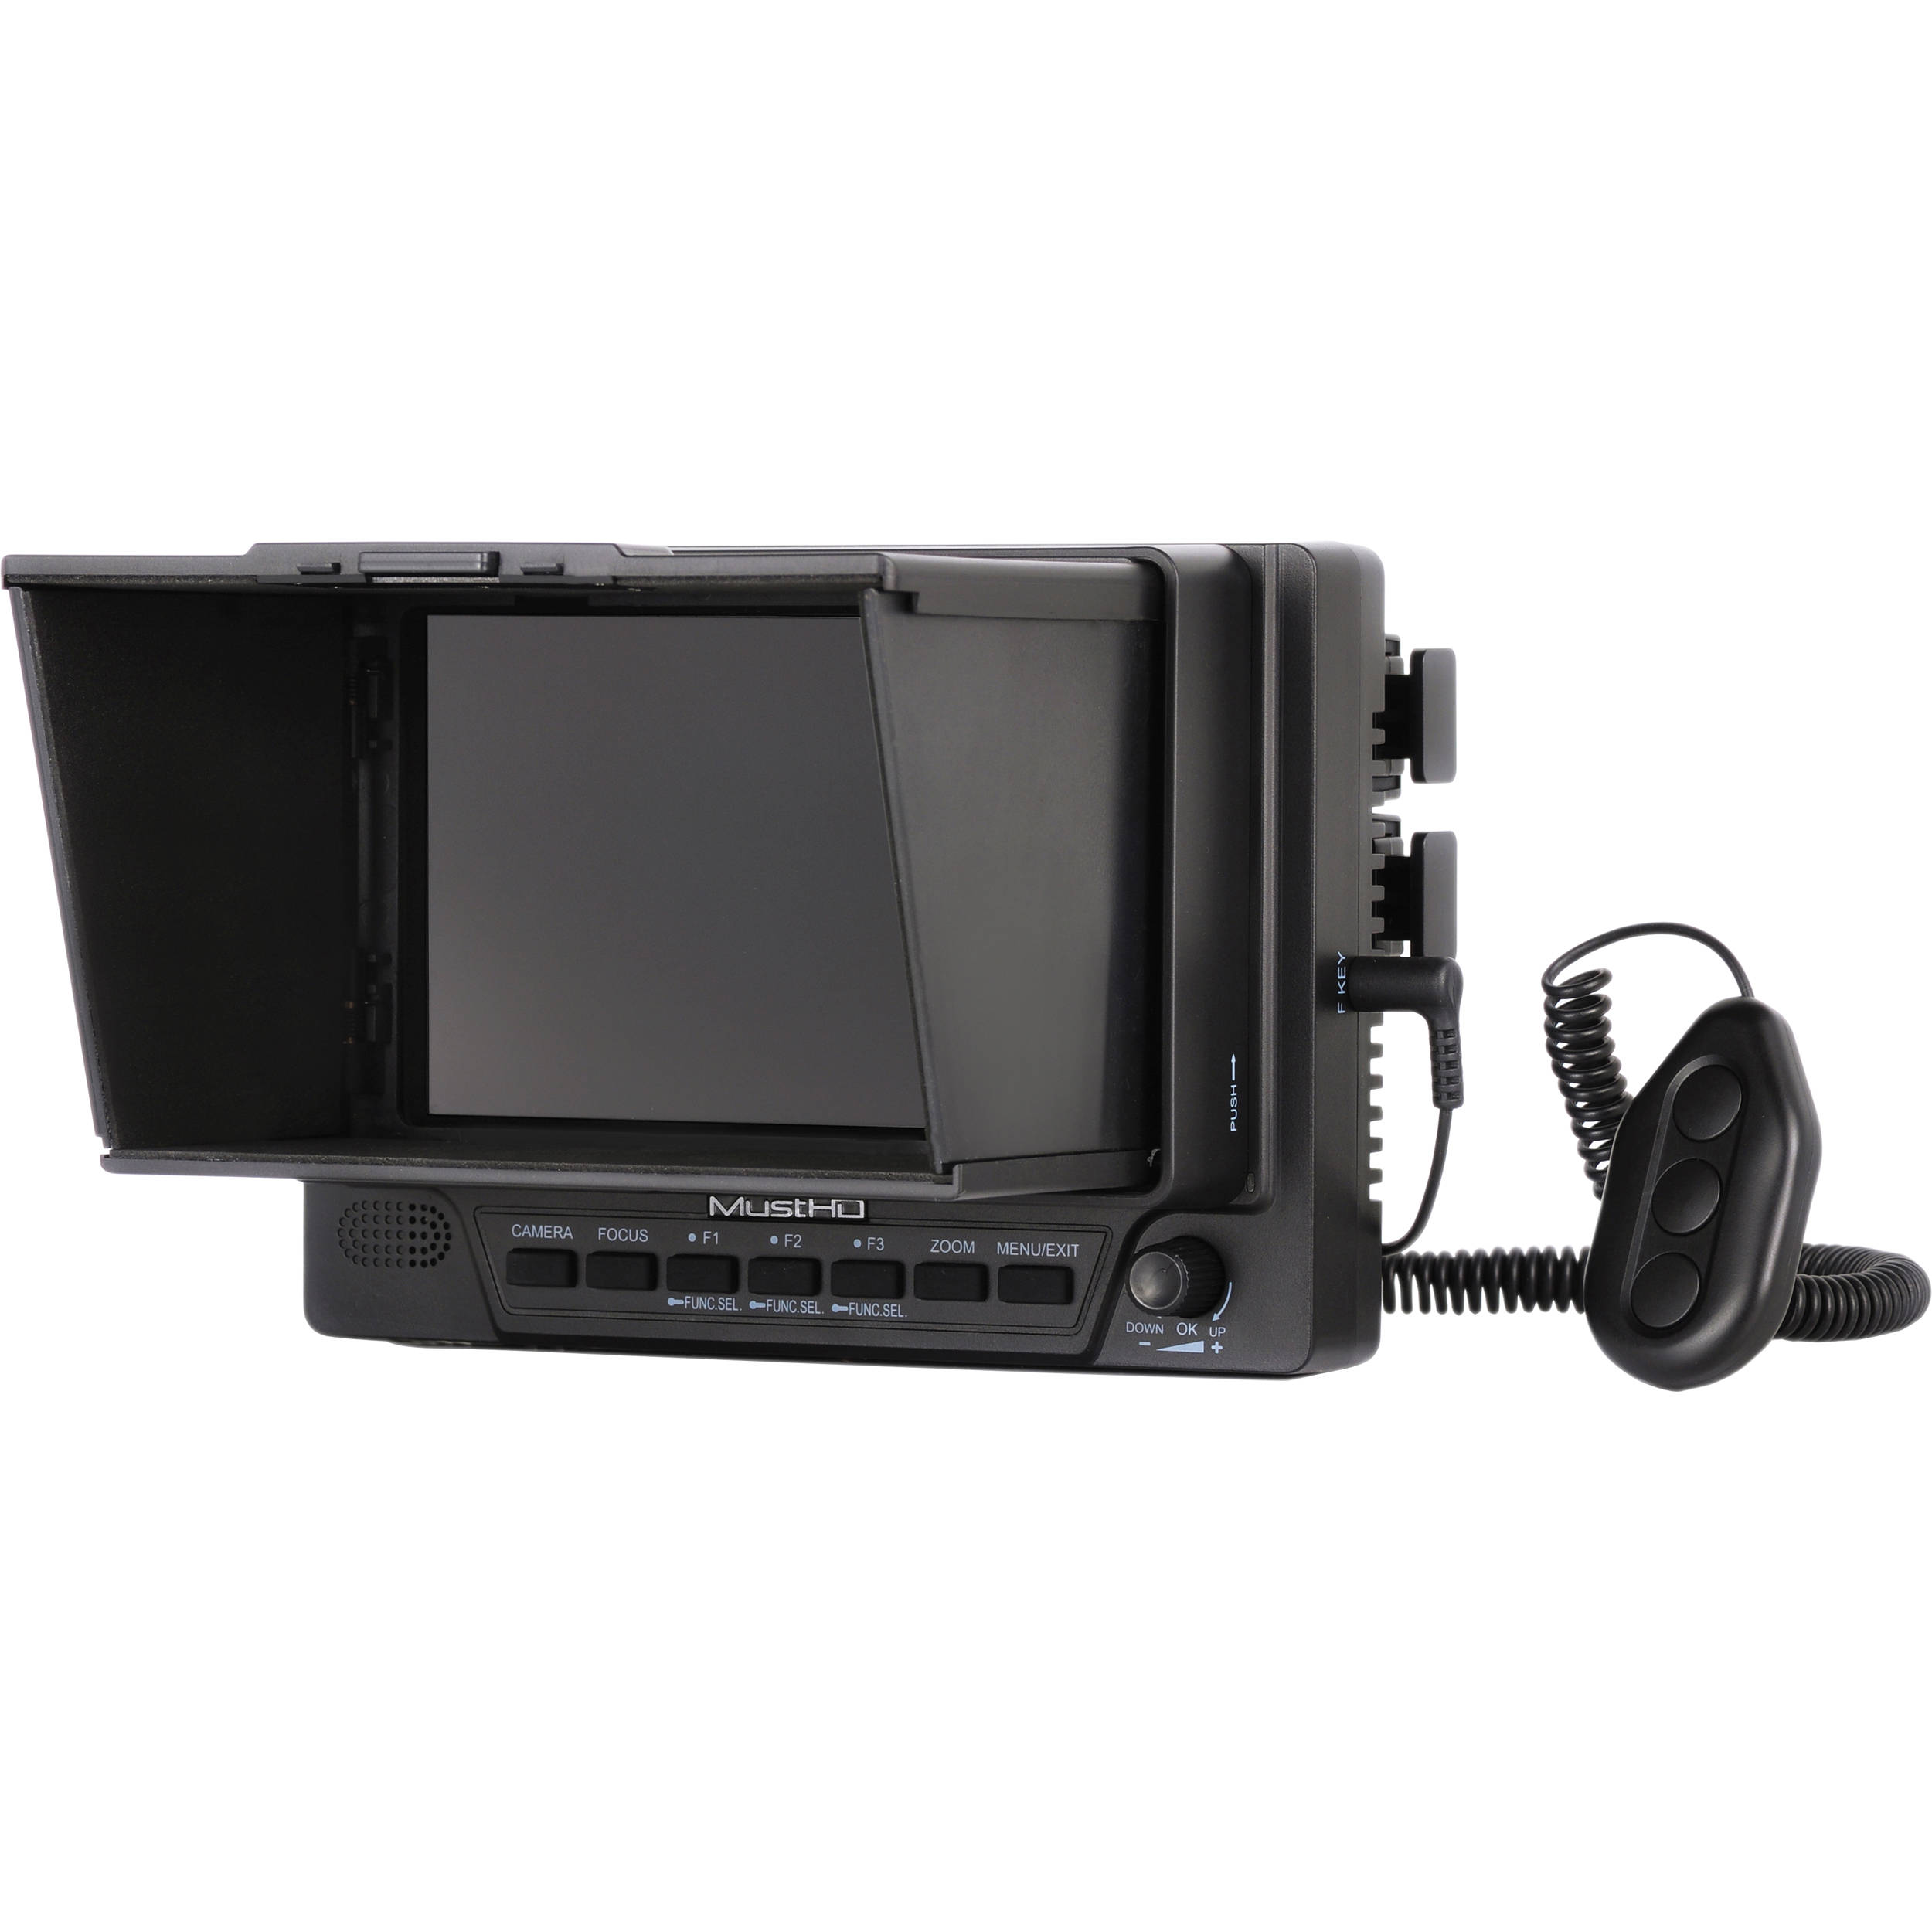 Musthd 5 On Camera Field Monitor M501h Bh Photo Video And Screen Disposable Flash Circuit Schematic